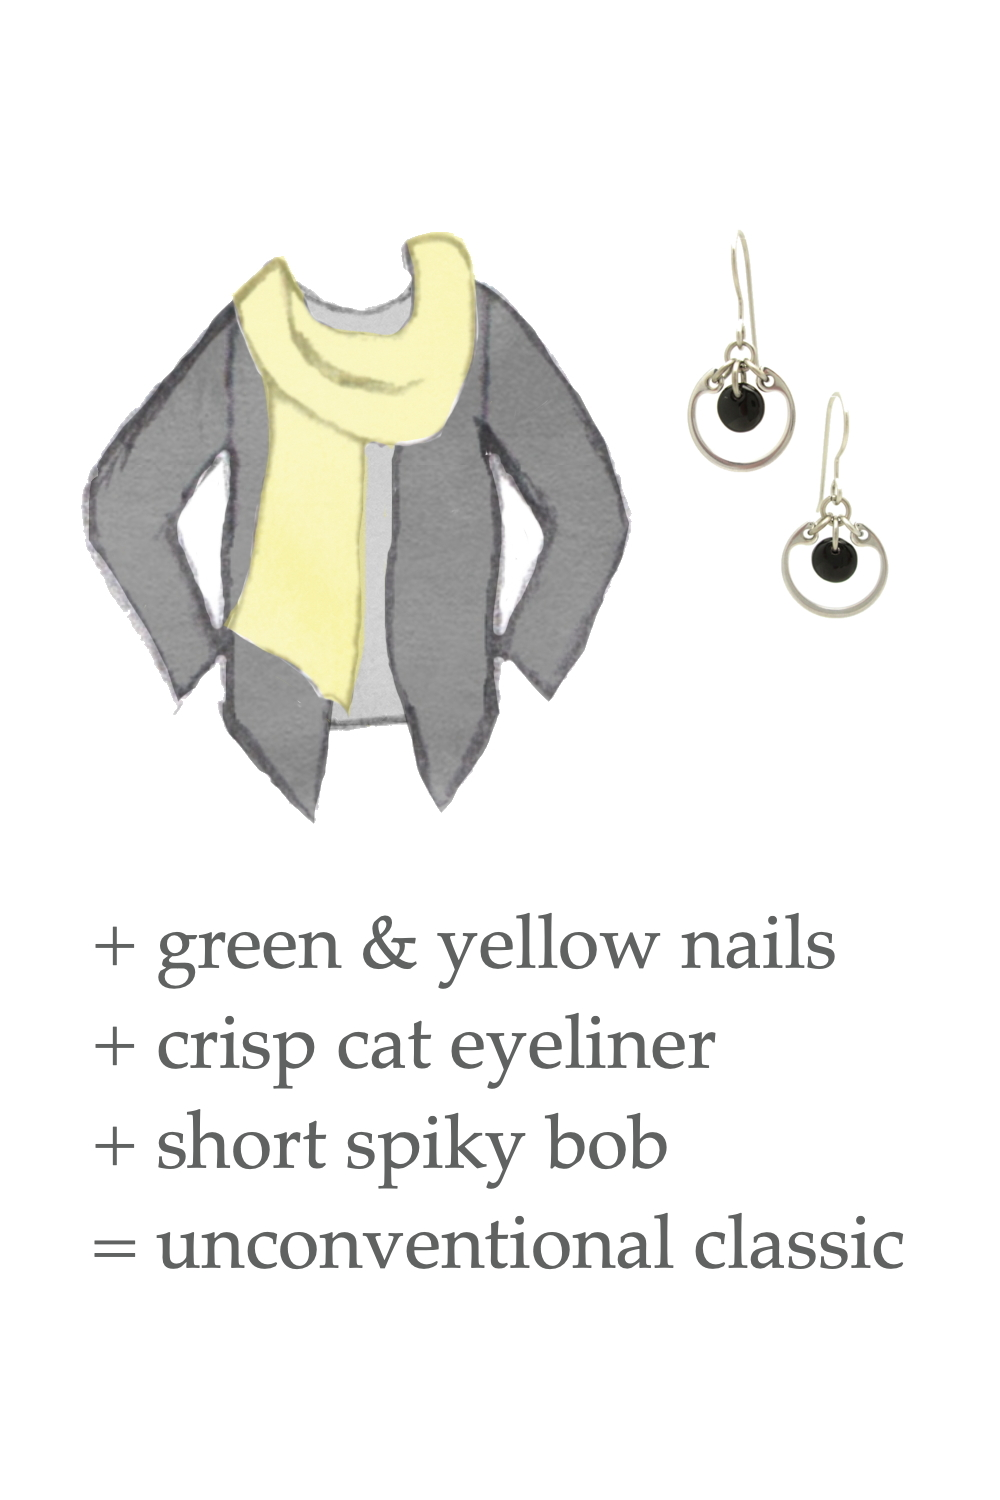 Style sketch of an outfit idea, with a light gray tee, pale yellow scarf, & dark grey cardigan, with Wraptillion's small modern circle earrings in black. Text on image reads: + green & yellow nails + crisp cat eyeliner + short spiky bob = unconventional classic.